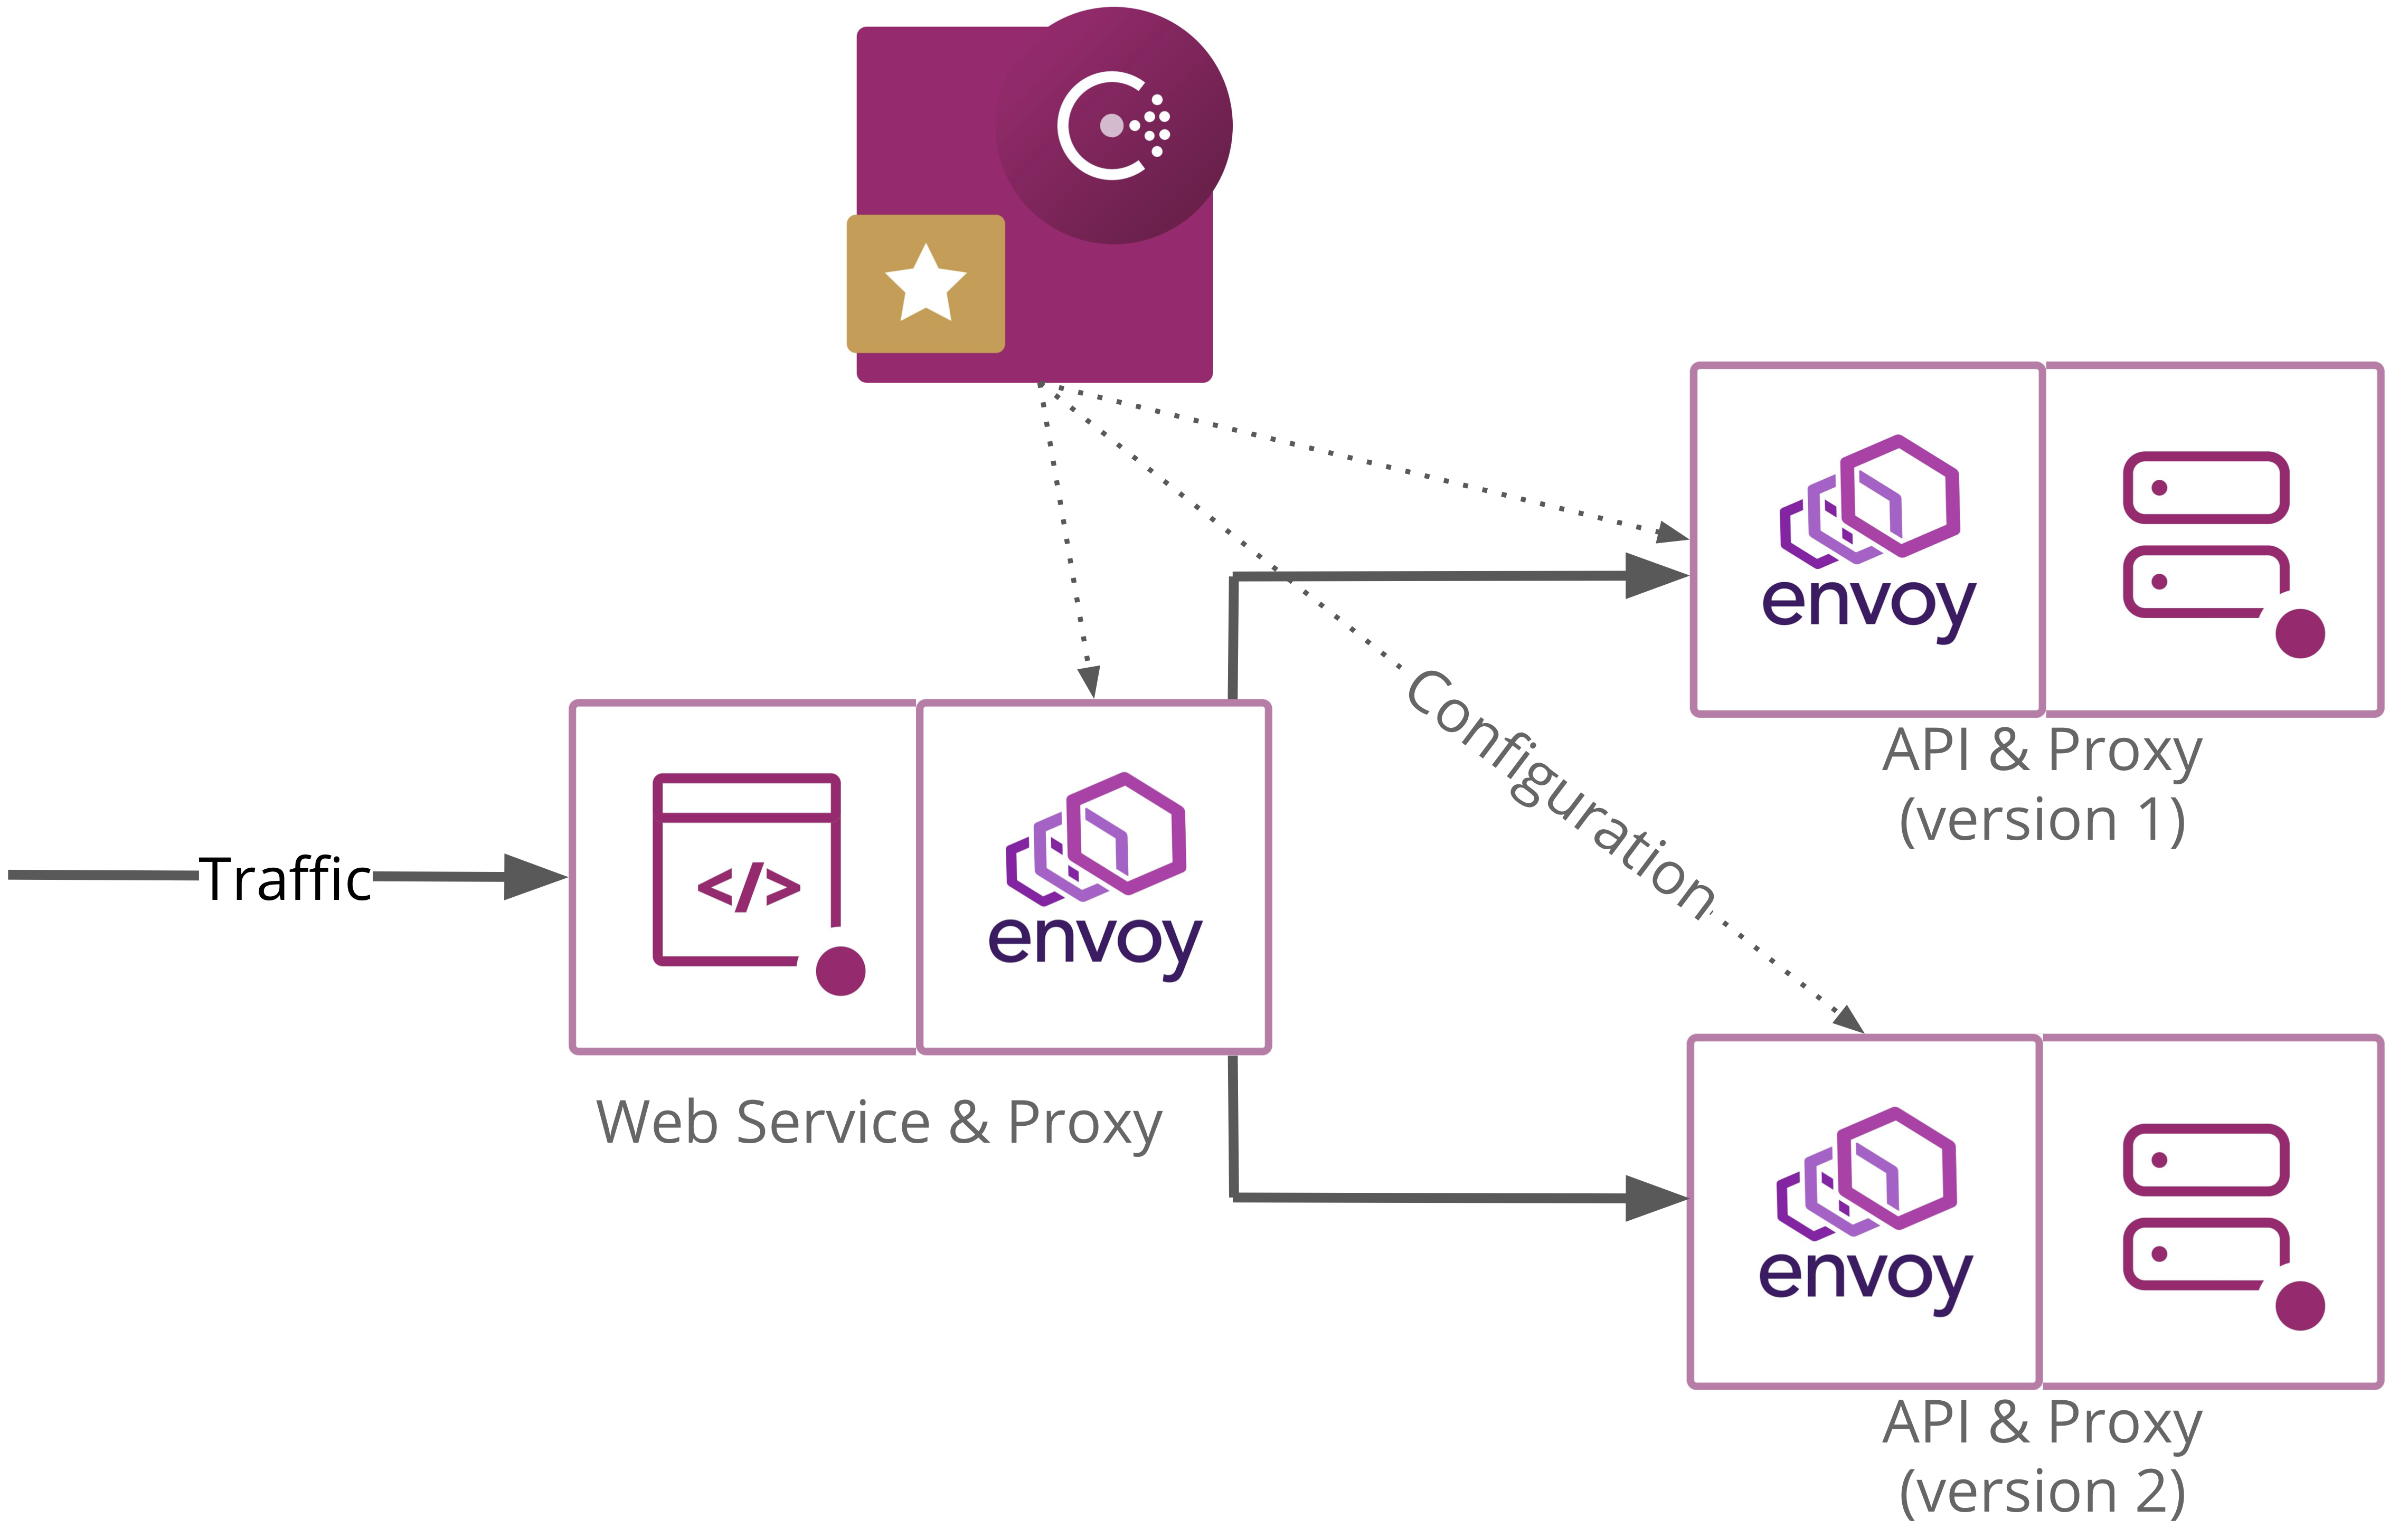 Architecture diagram of the splitting demo. A web service directly connects to two different versions of the API service through proxies. Consul configures those proxies.